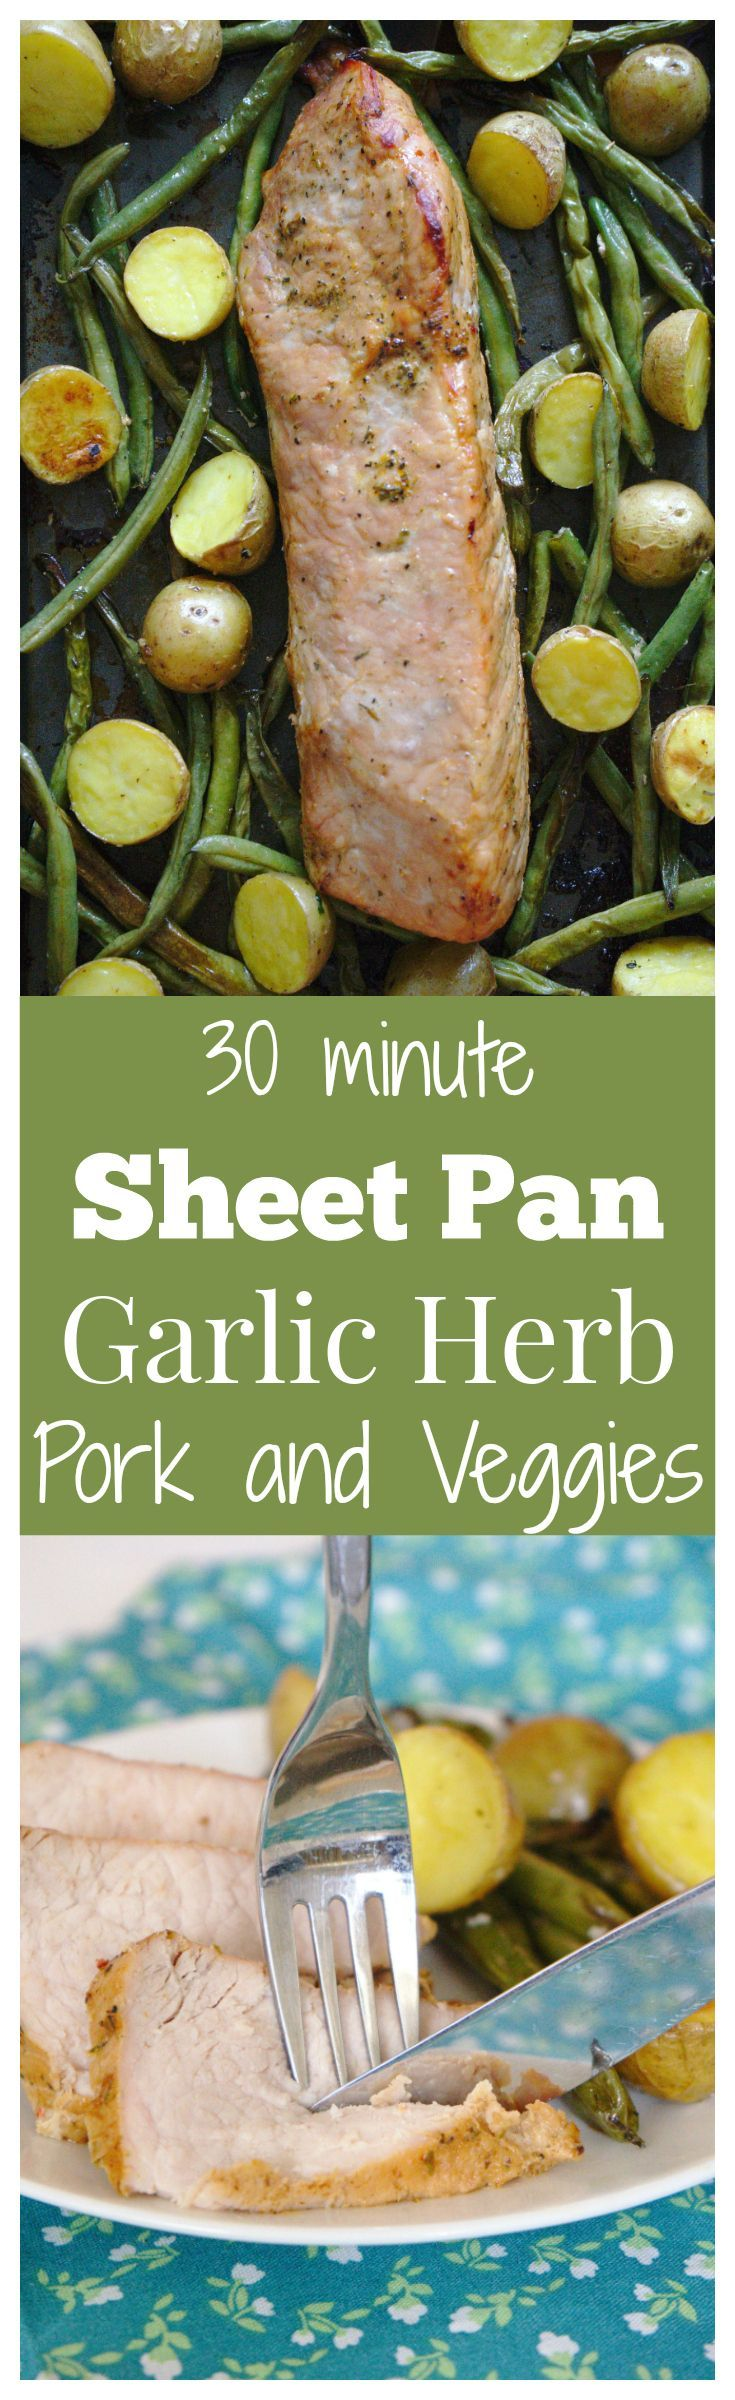 Sheet Pan Garlic Herb Pork and Veggies – A quick and easy 30 minute meal with minimal clean up! Fresh green beans, yukon gold potatoes, and pork tenderloin with a garlic herb sauce! @smithfieldfoods #RealFlavorRealFast [ad]